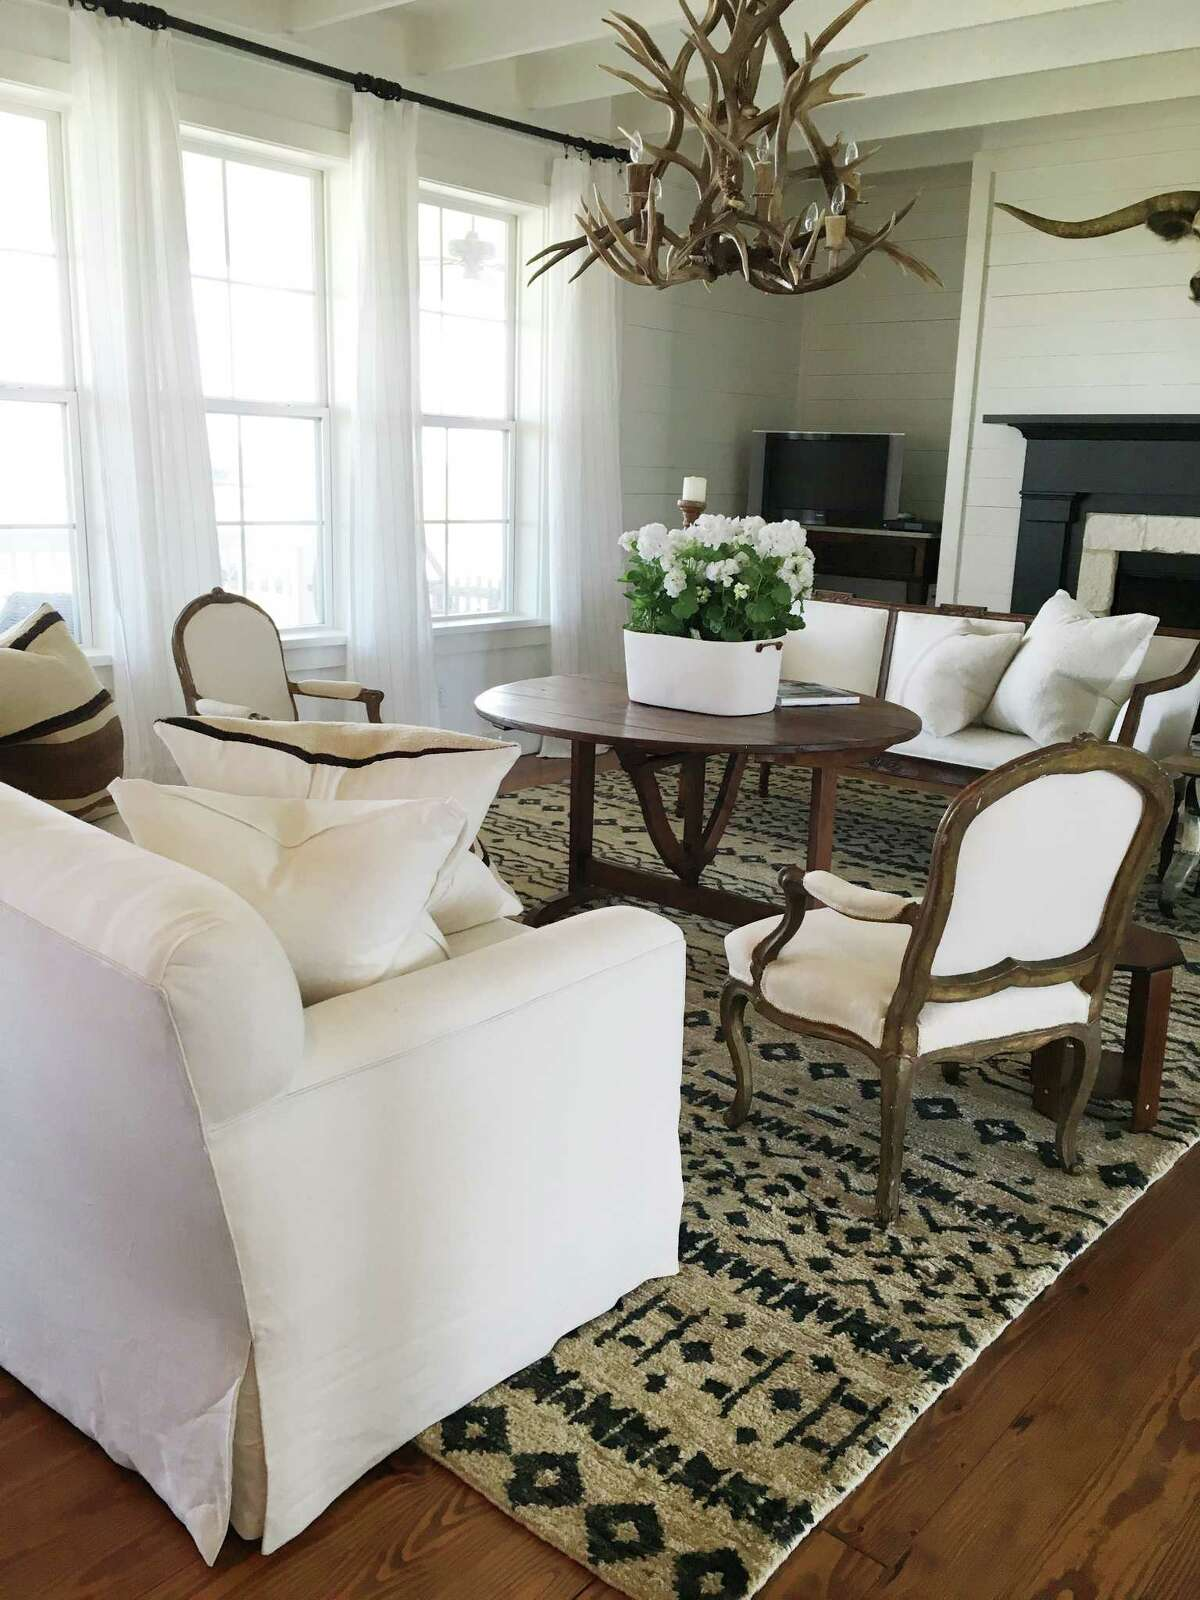 Houstonians Richard and Kimberley Rolland bought their weekend retreat in Carmine fully decorated from their own interior designer, Renea Abbott.